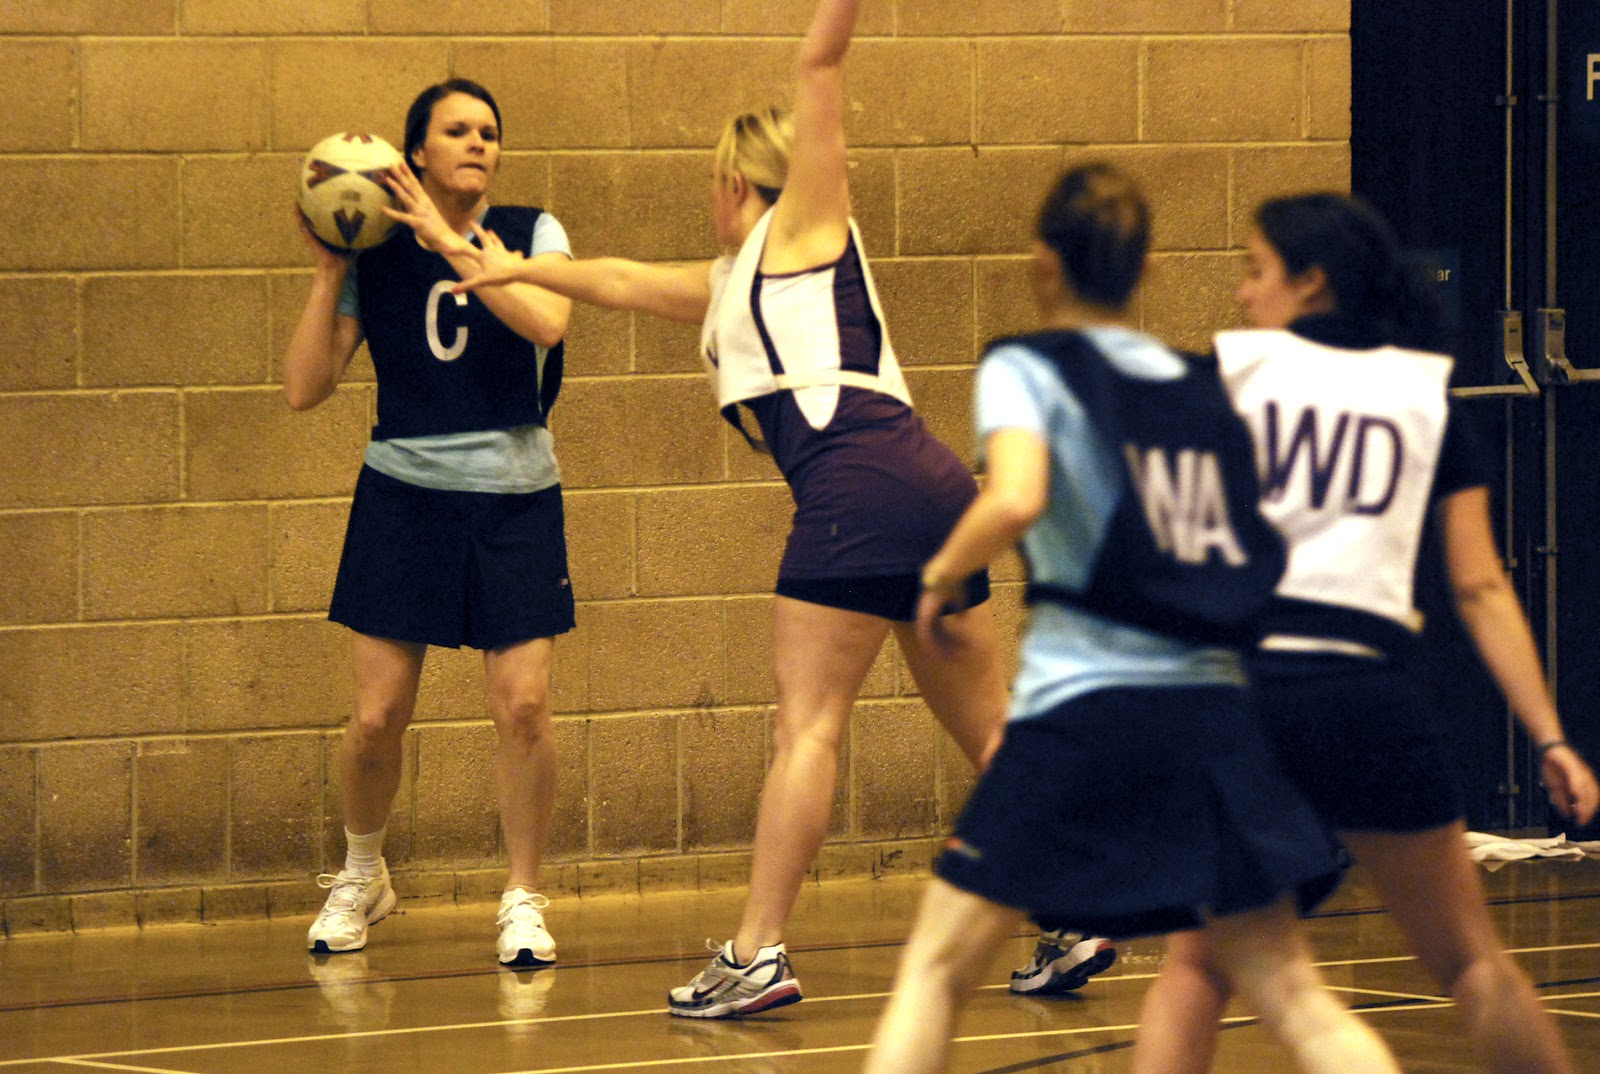 Female netball player in dark